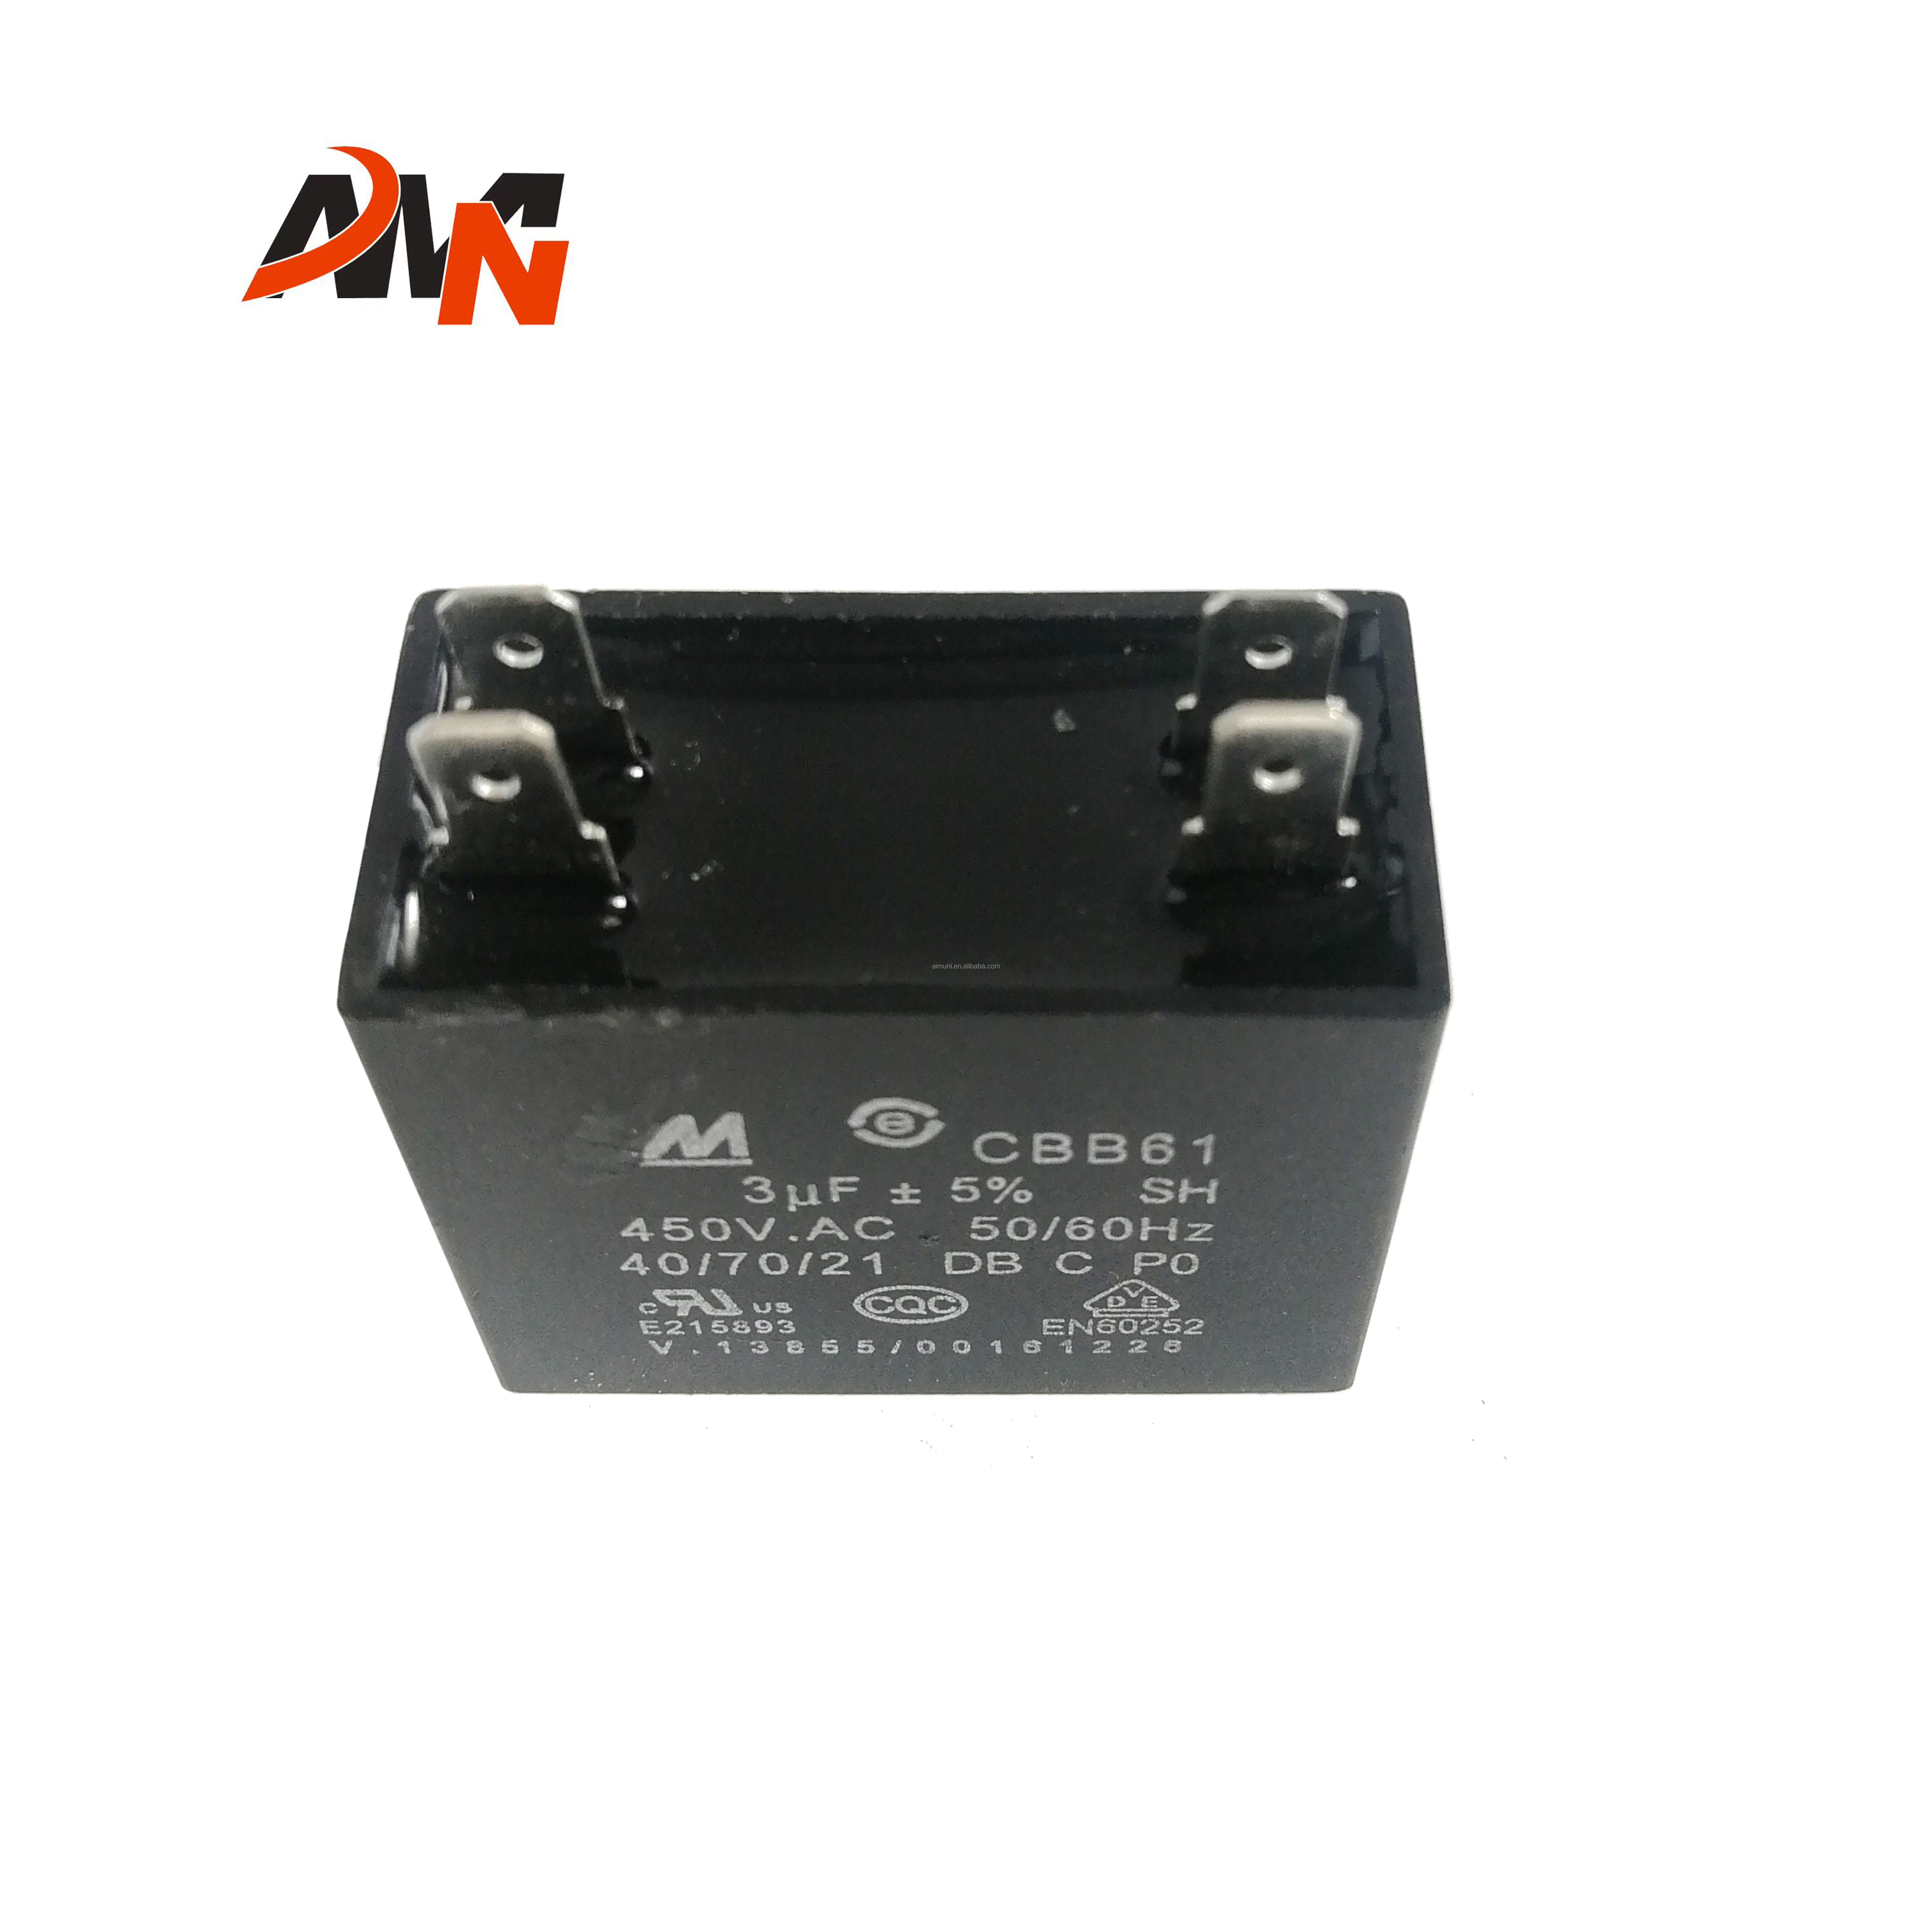 1uf 450v Ceiling Fan Wiring Diagram Capacitor Cbb61 Buy 1uf 450v Ceiling Fan Wiring Diagram Capacitor Cbb61 Product On Alibaba Com